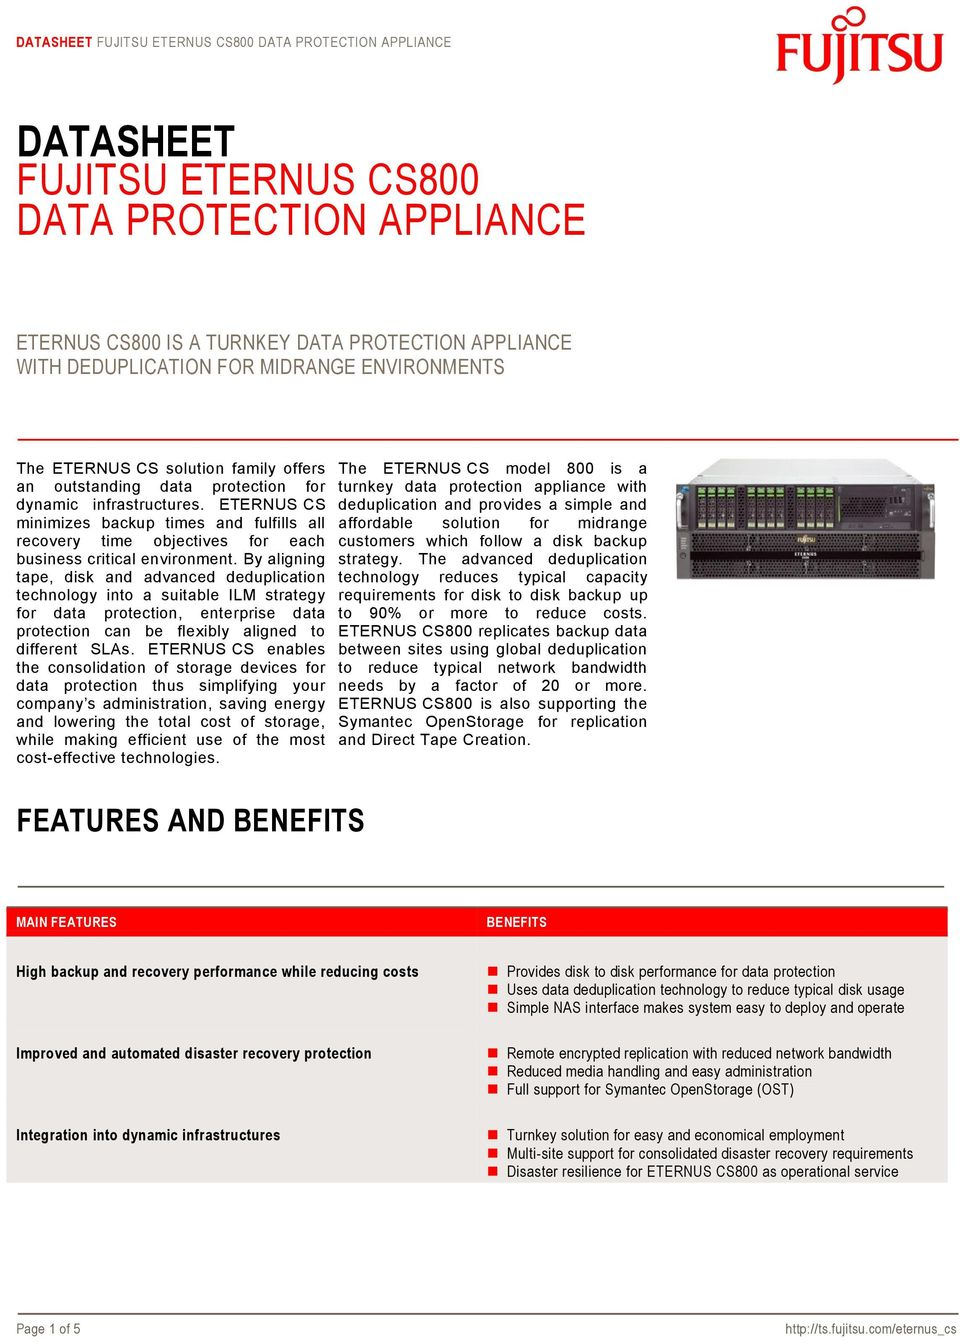 By aligning tape, disk and advanced deduplication technology into a suitable ILM strategy for data protection, enterprise data protection can be flexibly aligned to different SLAs.